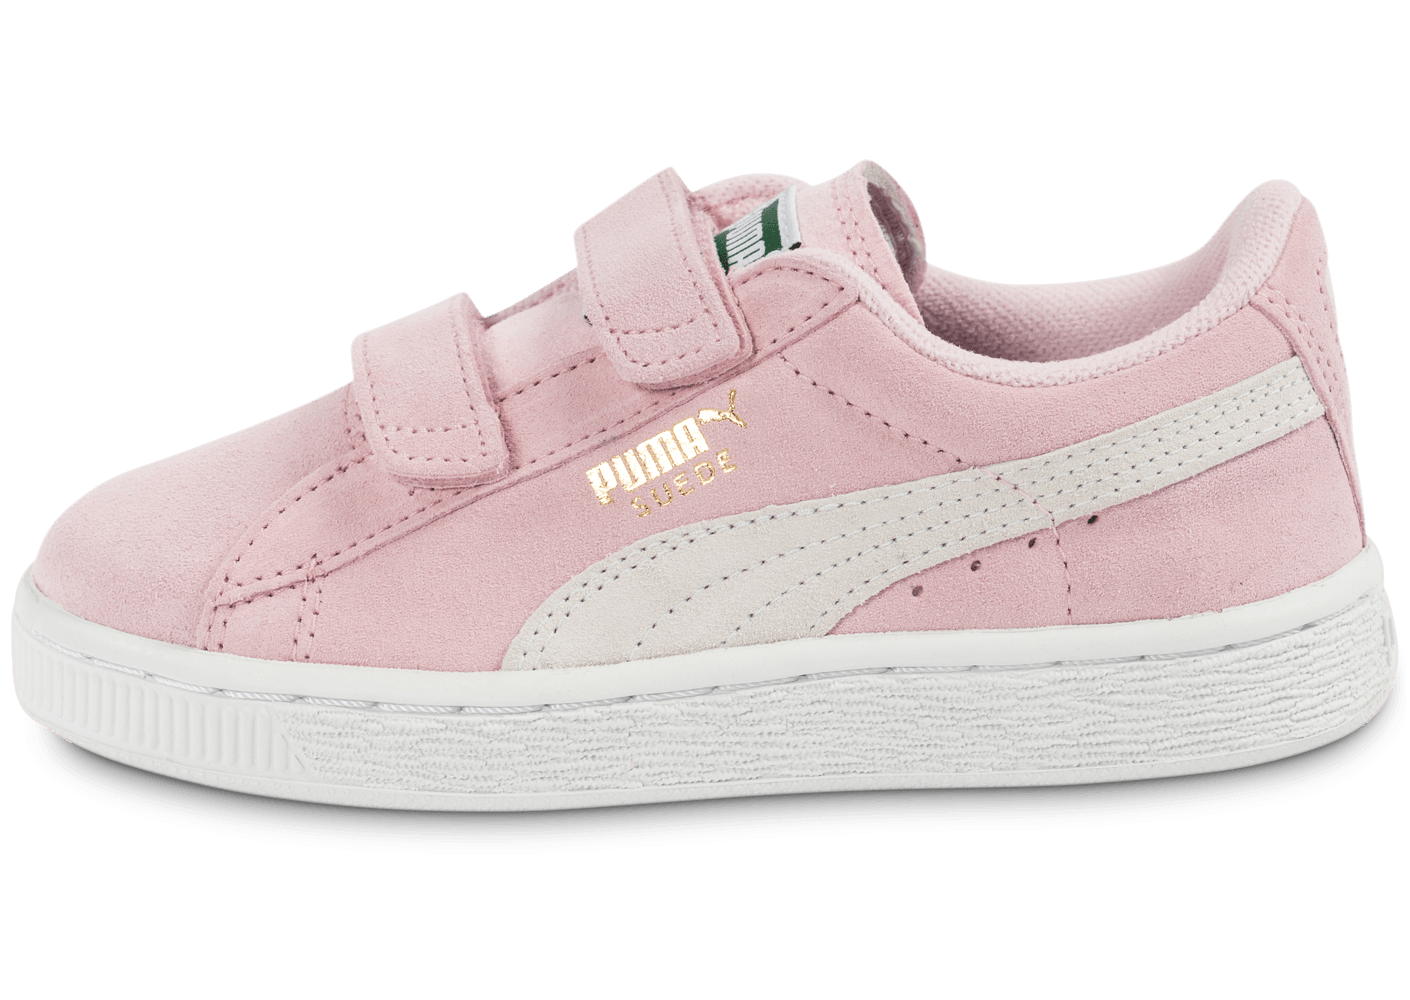 Puma 70 70 Puma Off Fille Basket Basket Fille Basket Off nxwF4Y